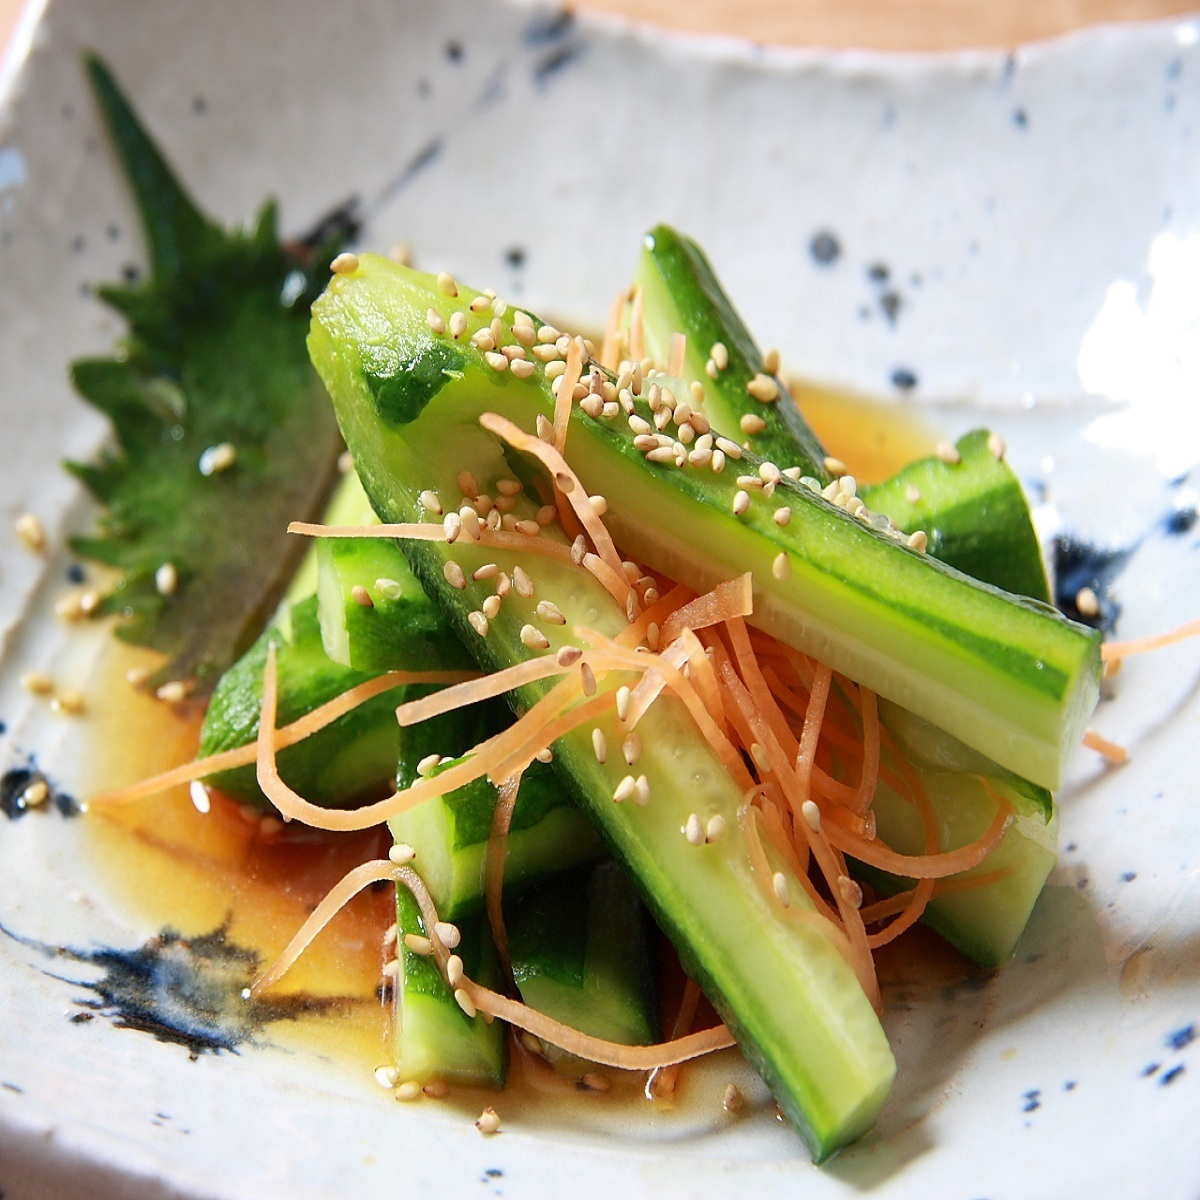 Biscuit cucumber / bamboo shoots